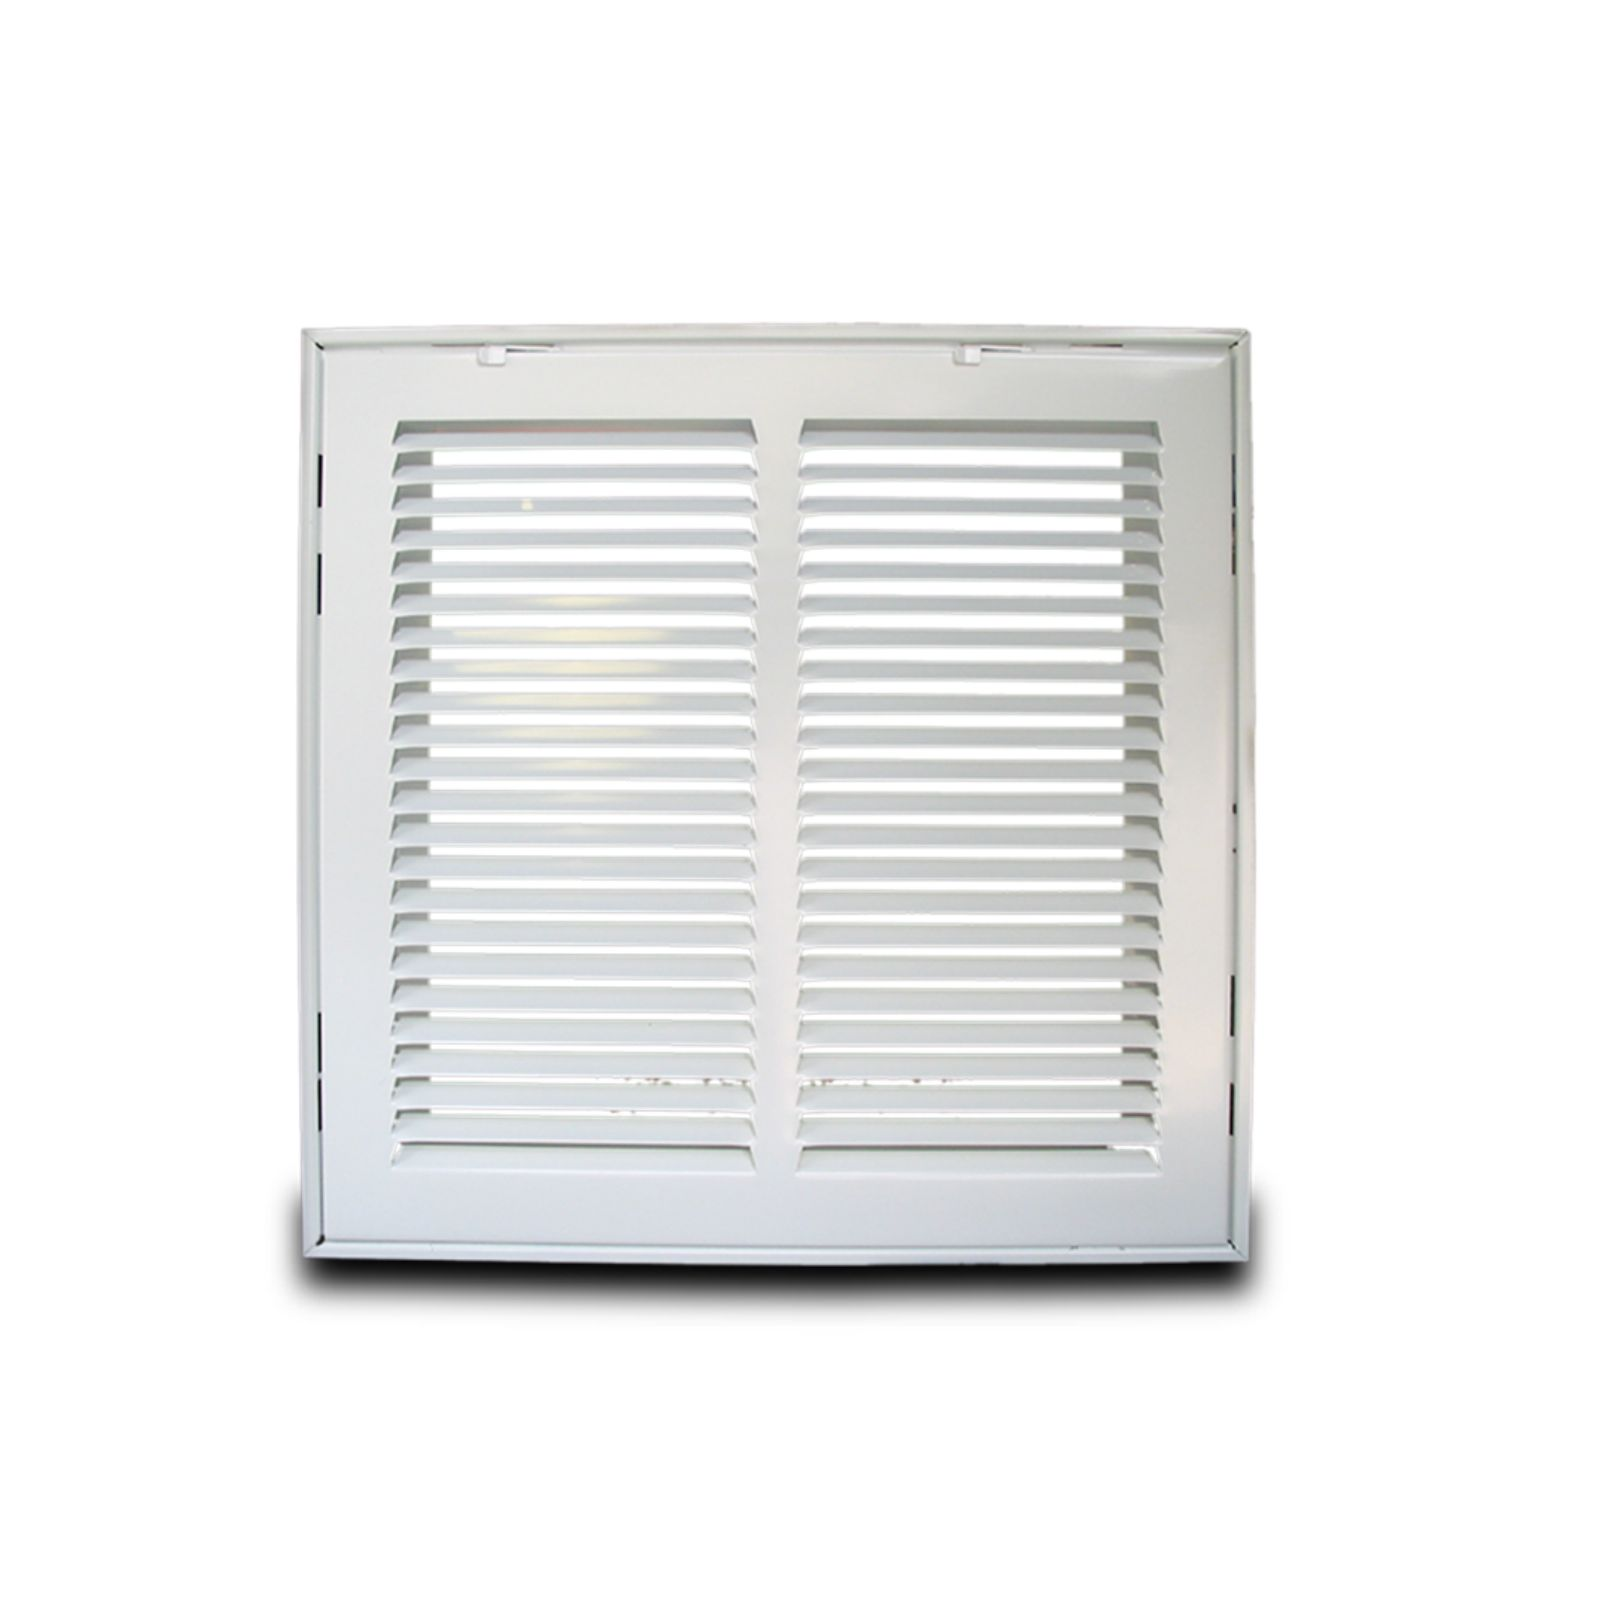 "Metal-Fab MFRFG1616W - Metal Fab Return Filter Grille, White,  16"" X 16"""